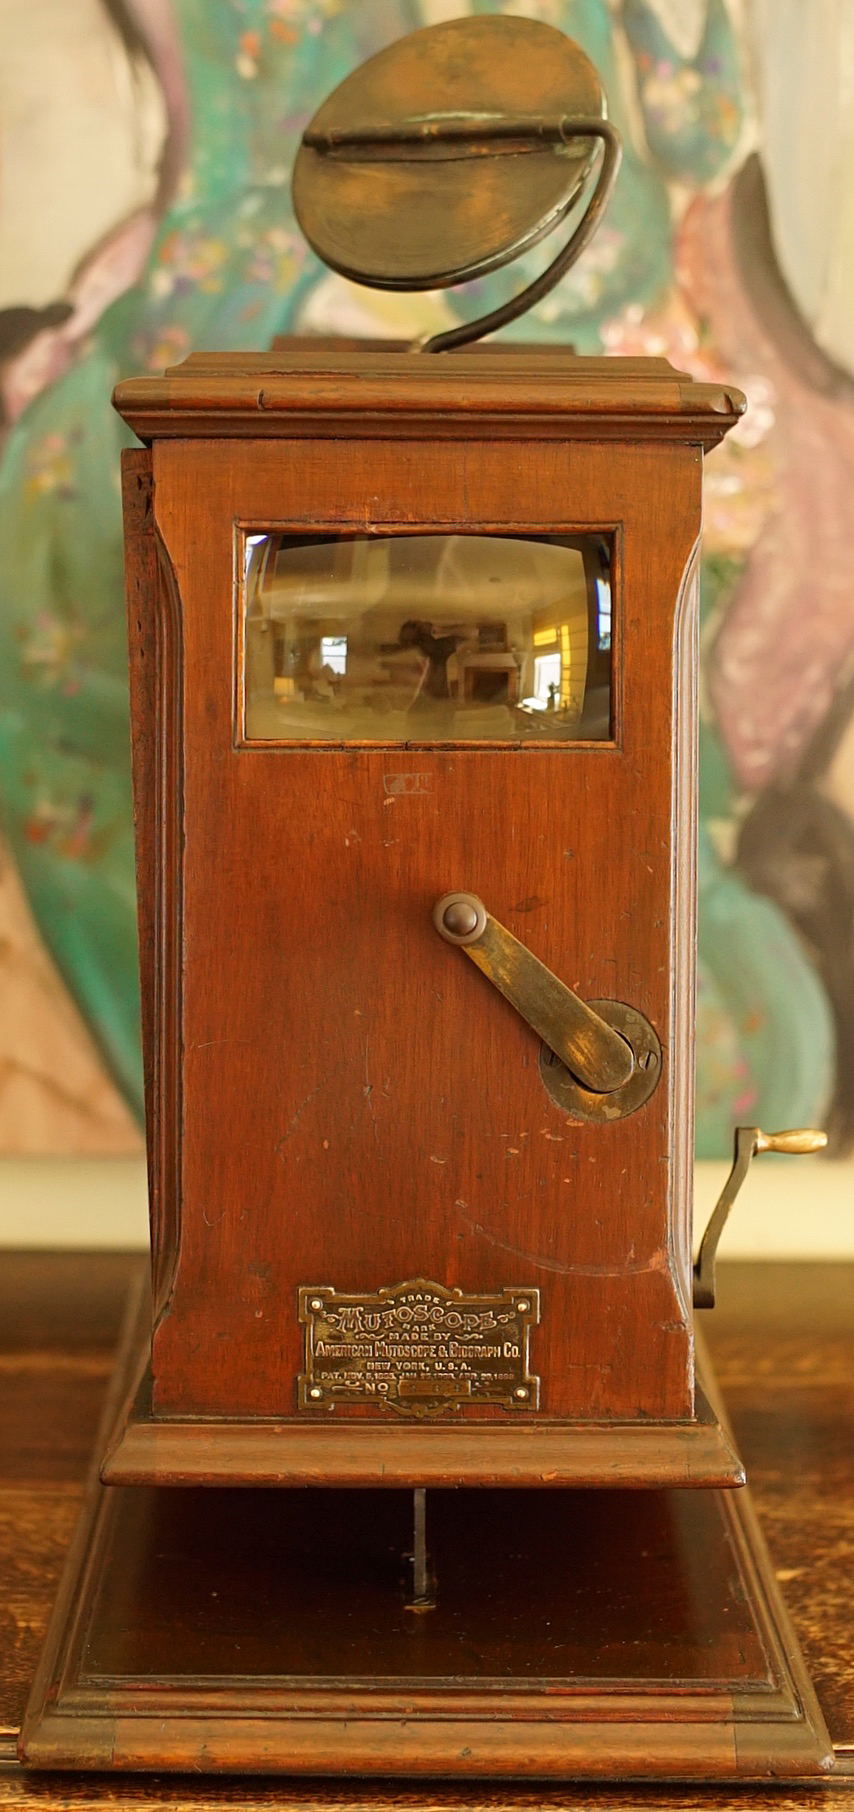 ASC Museum: Mutoscope - The American Society of Cinematographers